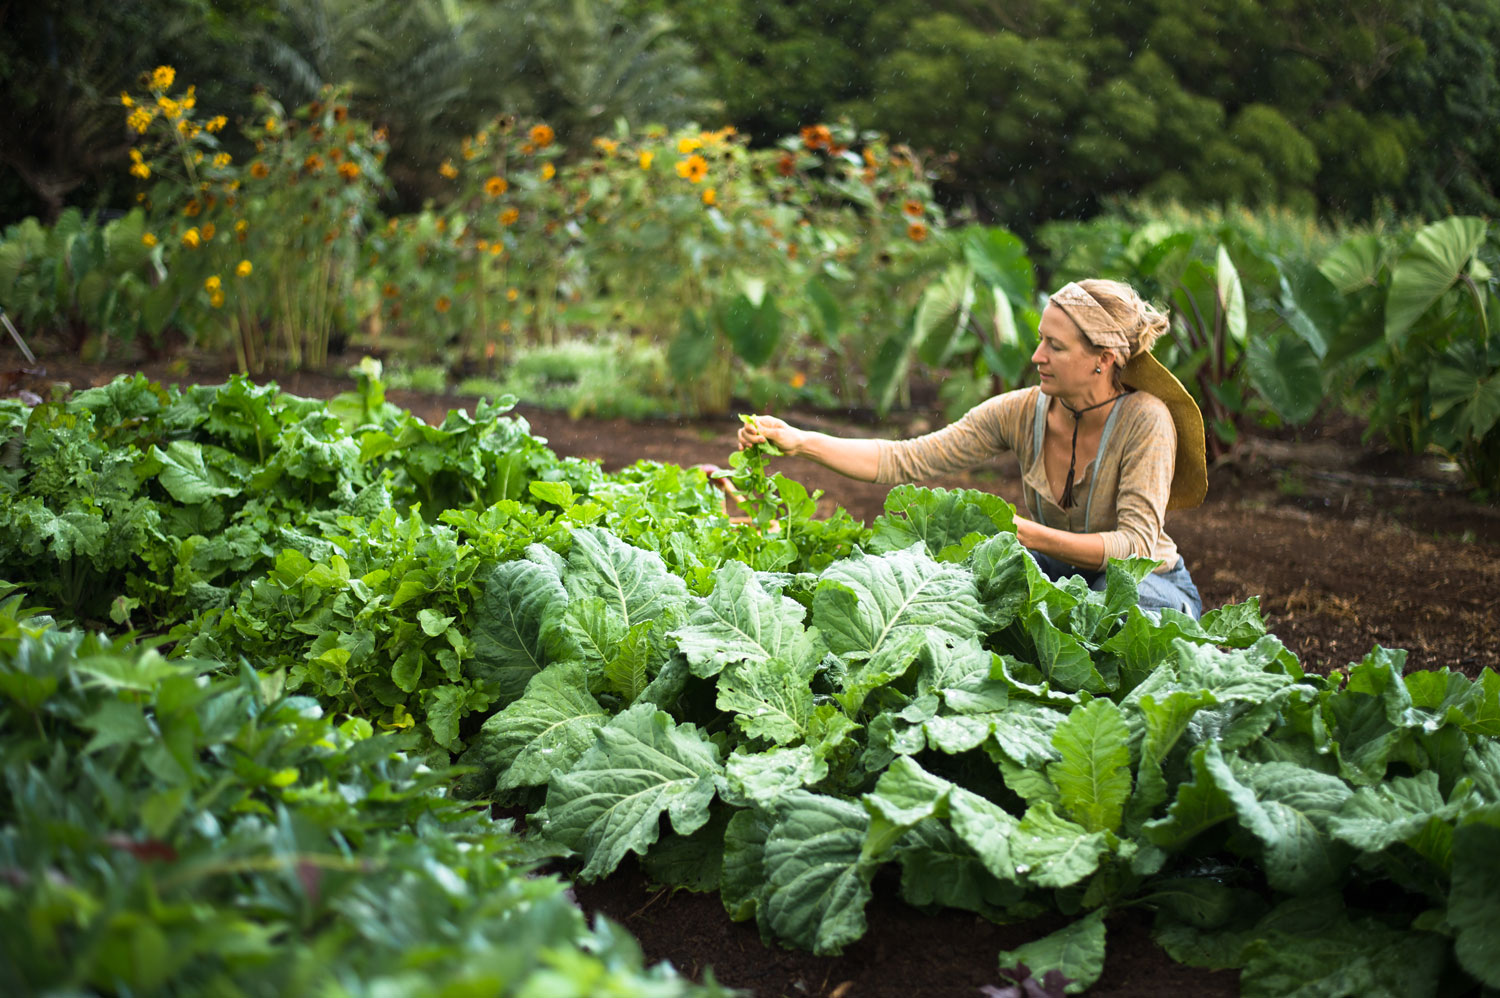 A person tending to plants in a large garden.